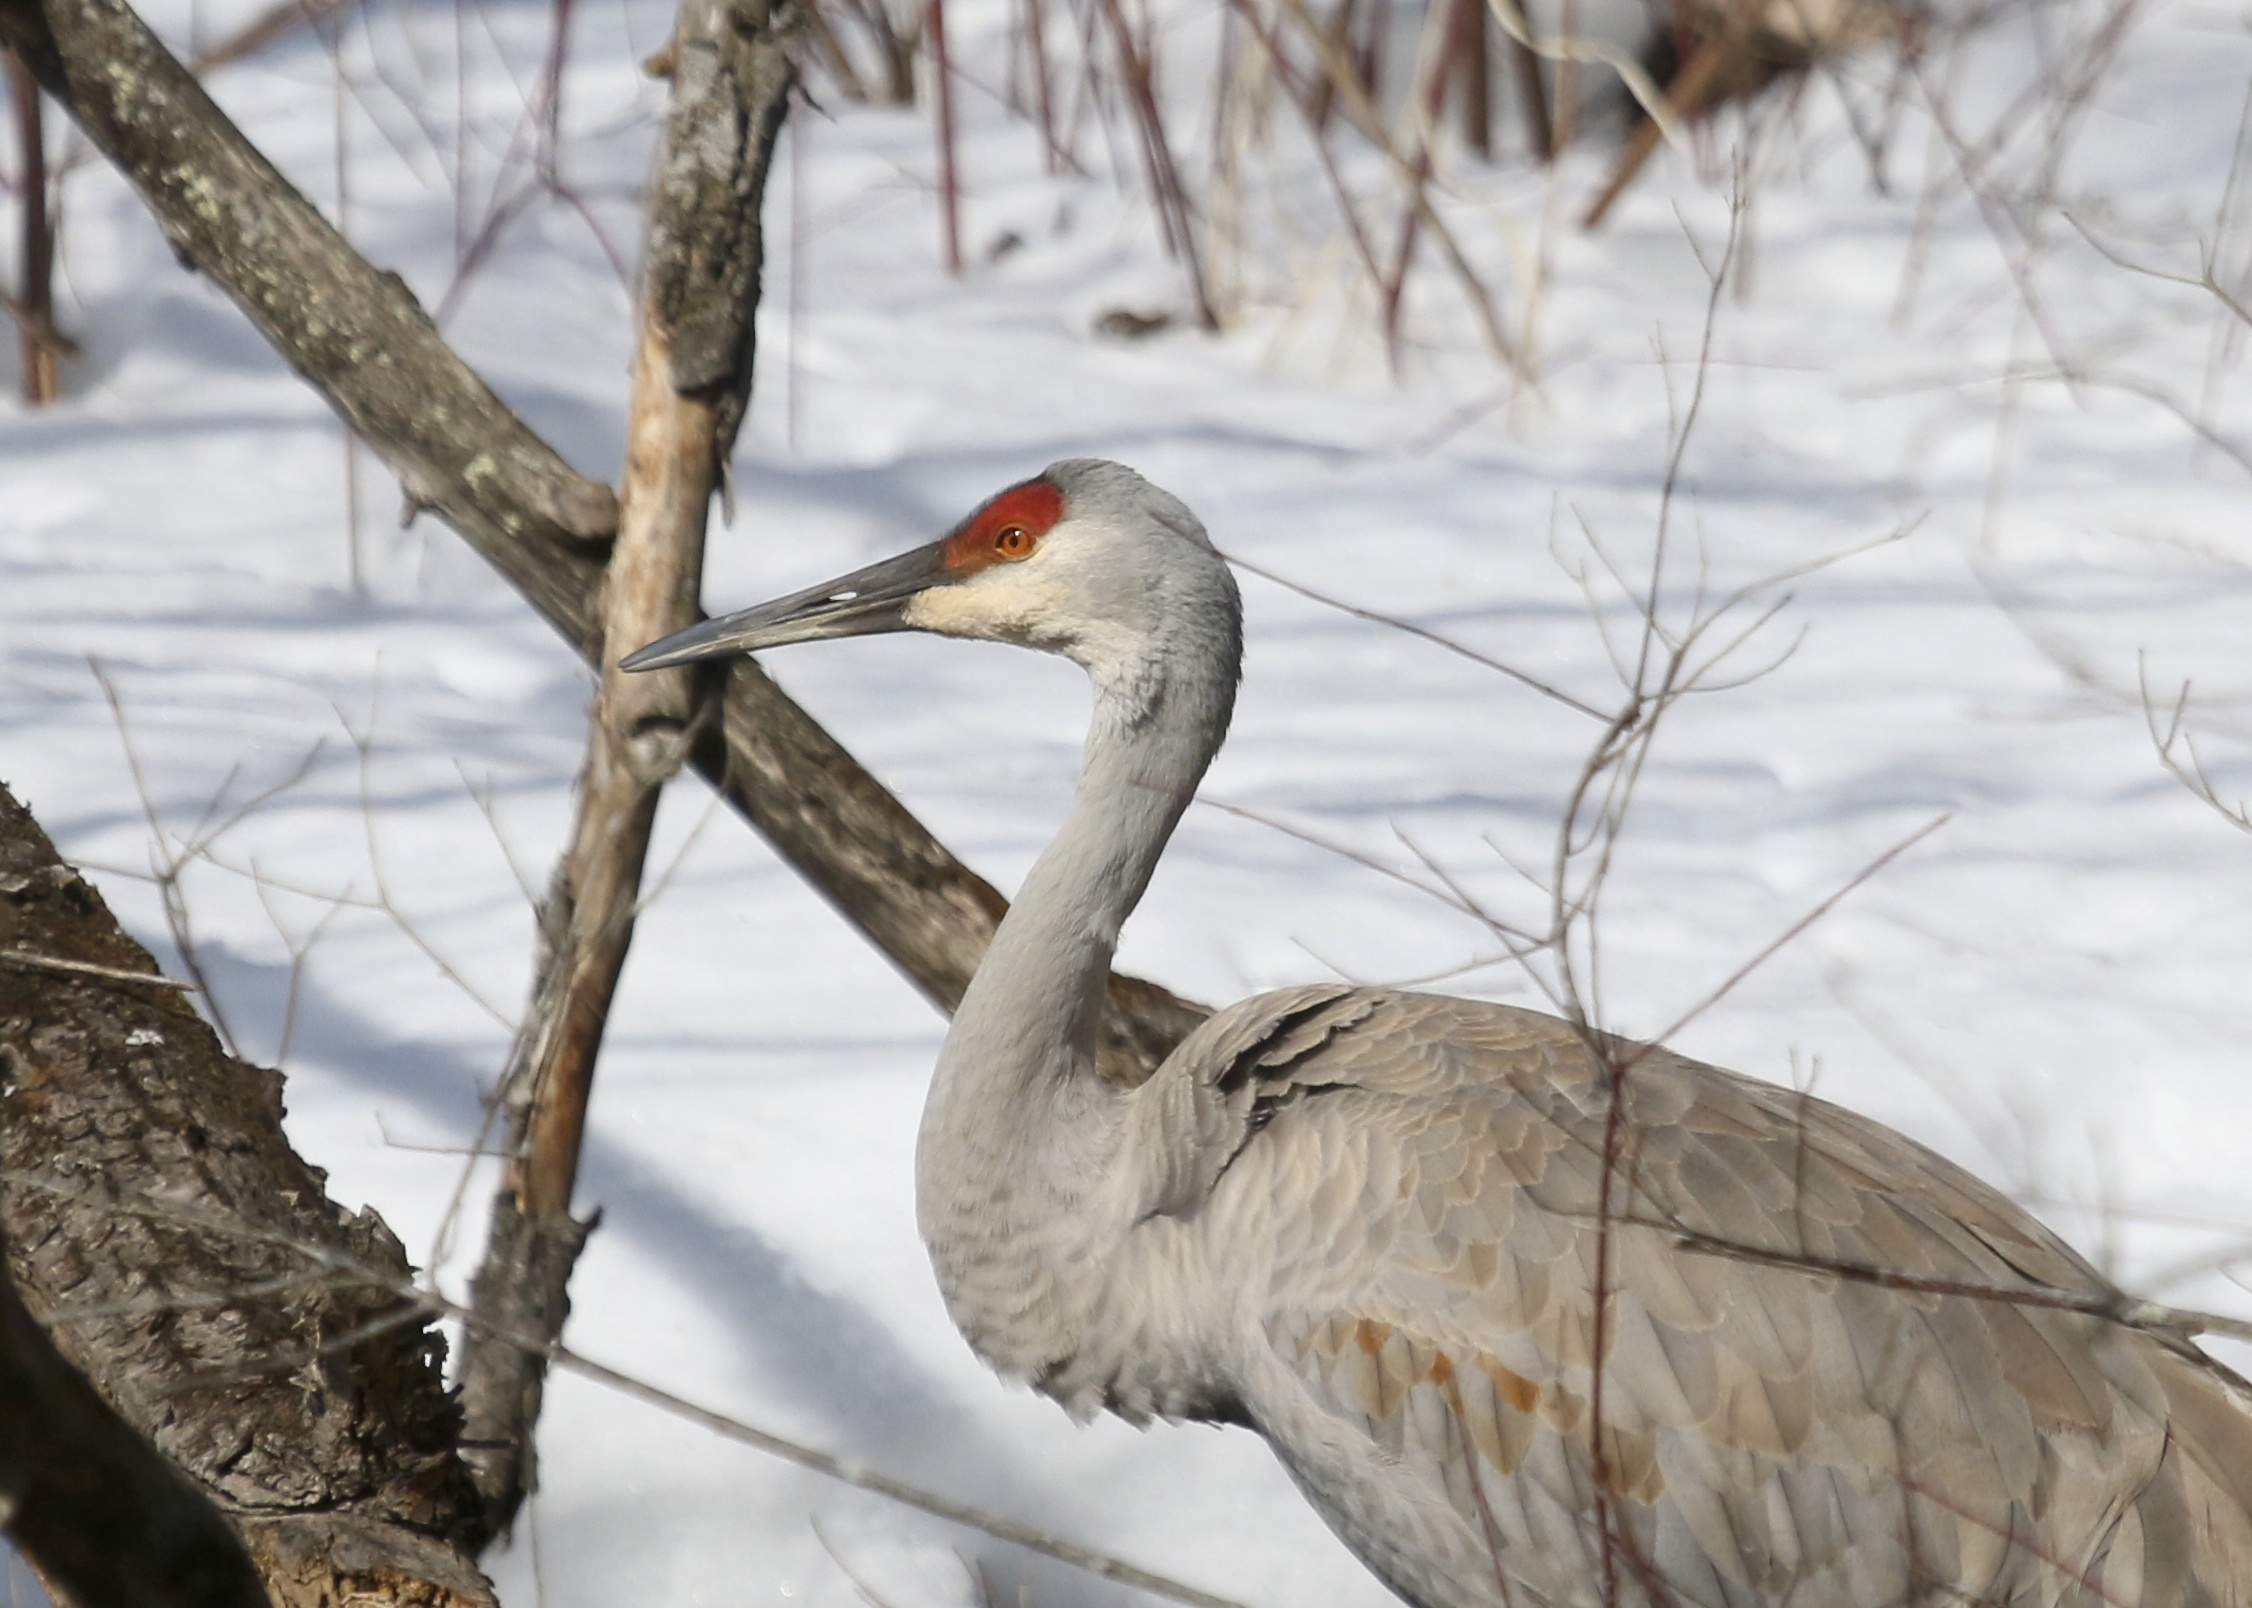 I was so happy to be able to see these birds today. One of two Sandhill Cranes in Ulster Park NY, 2/26/14.